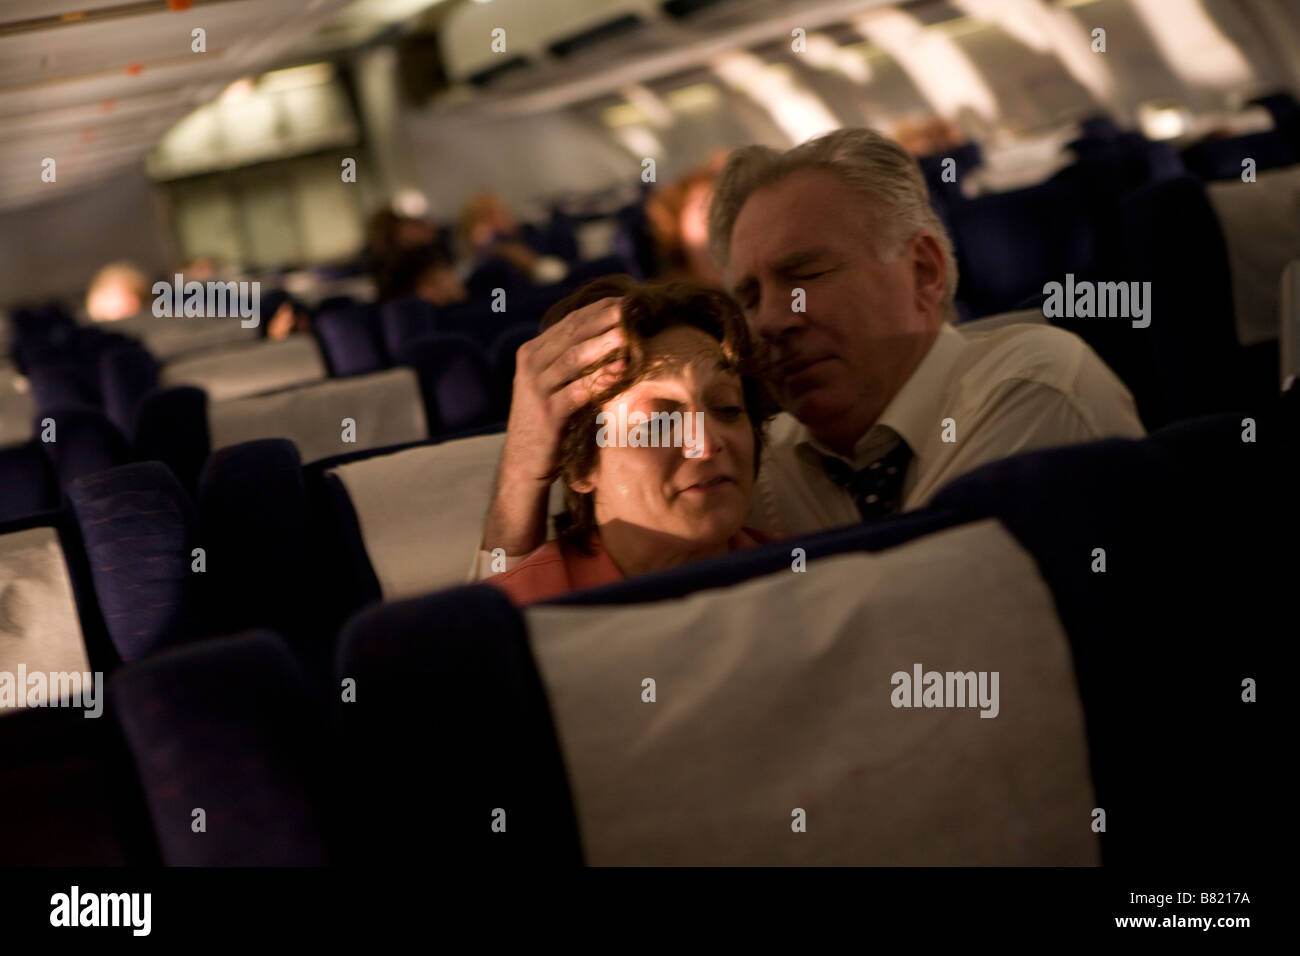 United 93 Jahr 2006 USA Becky London, Tom O'Rourke Regie: Paul Greengrass Stockbild